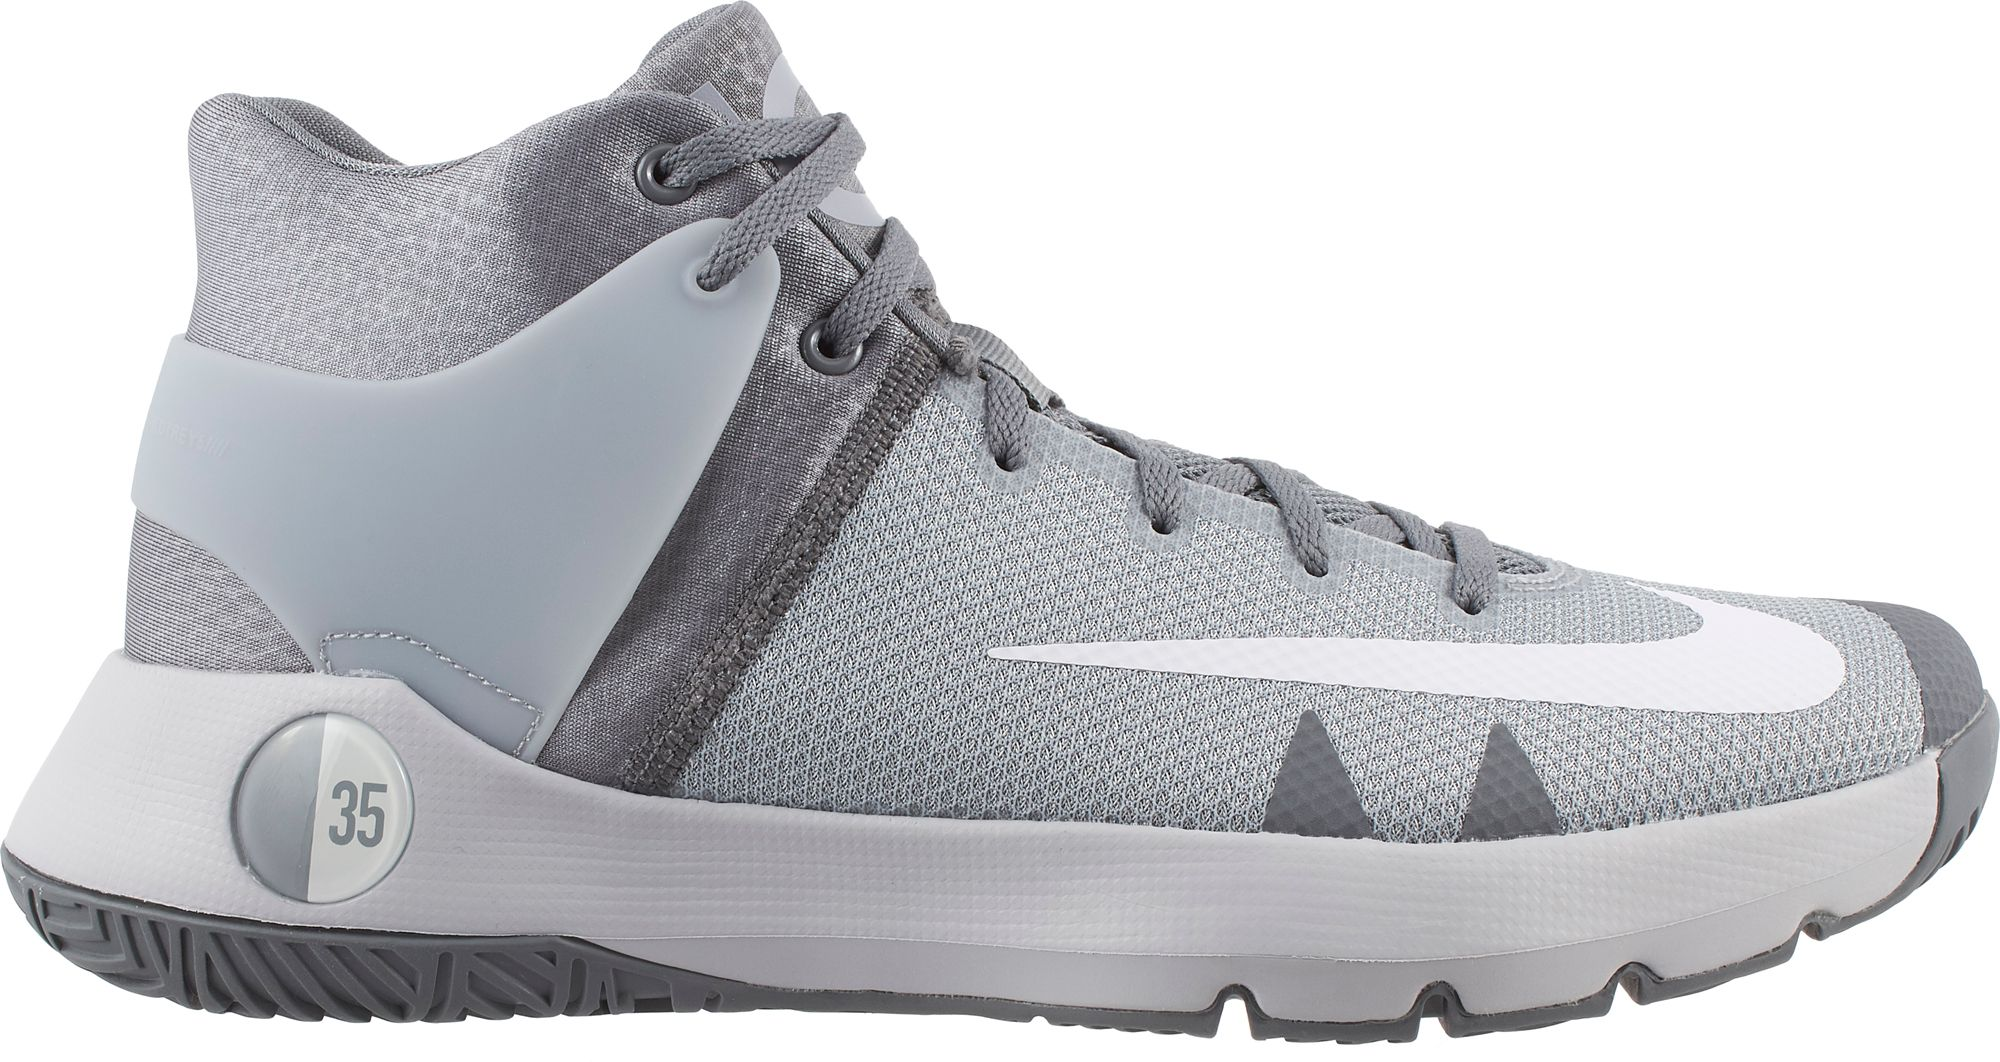 new style f1a82 bac89 chic Nike Mens KD Trey 5 IV Basketball Shoes DICKS Sporting Goods